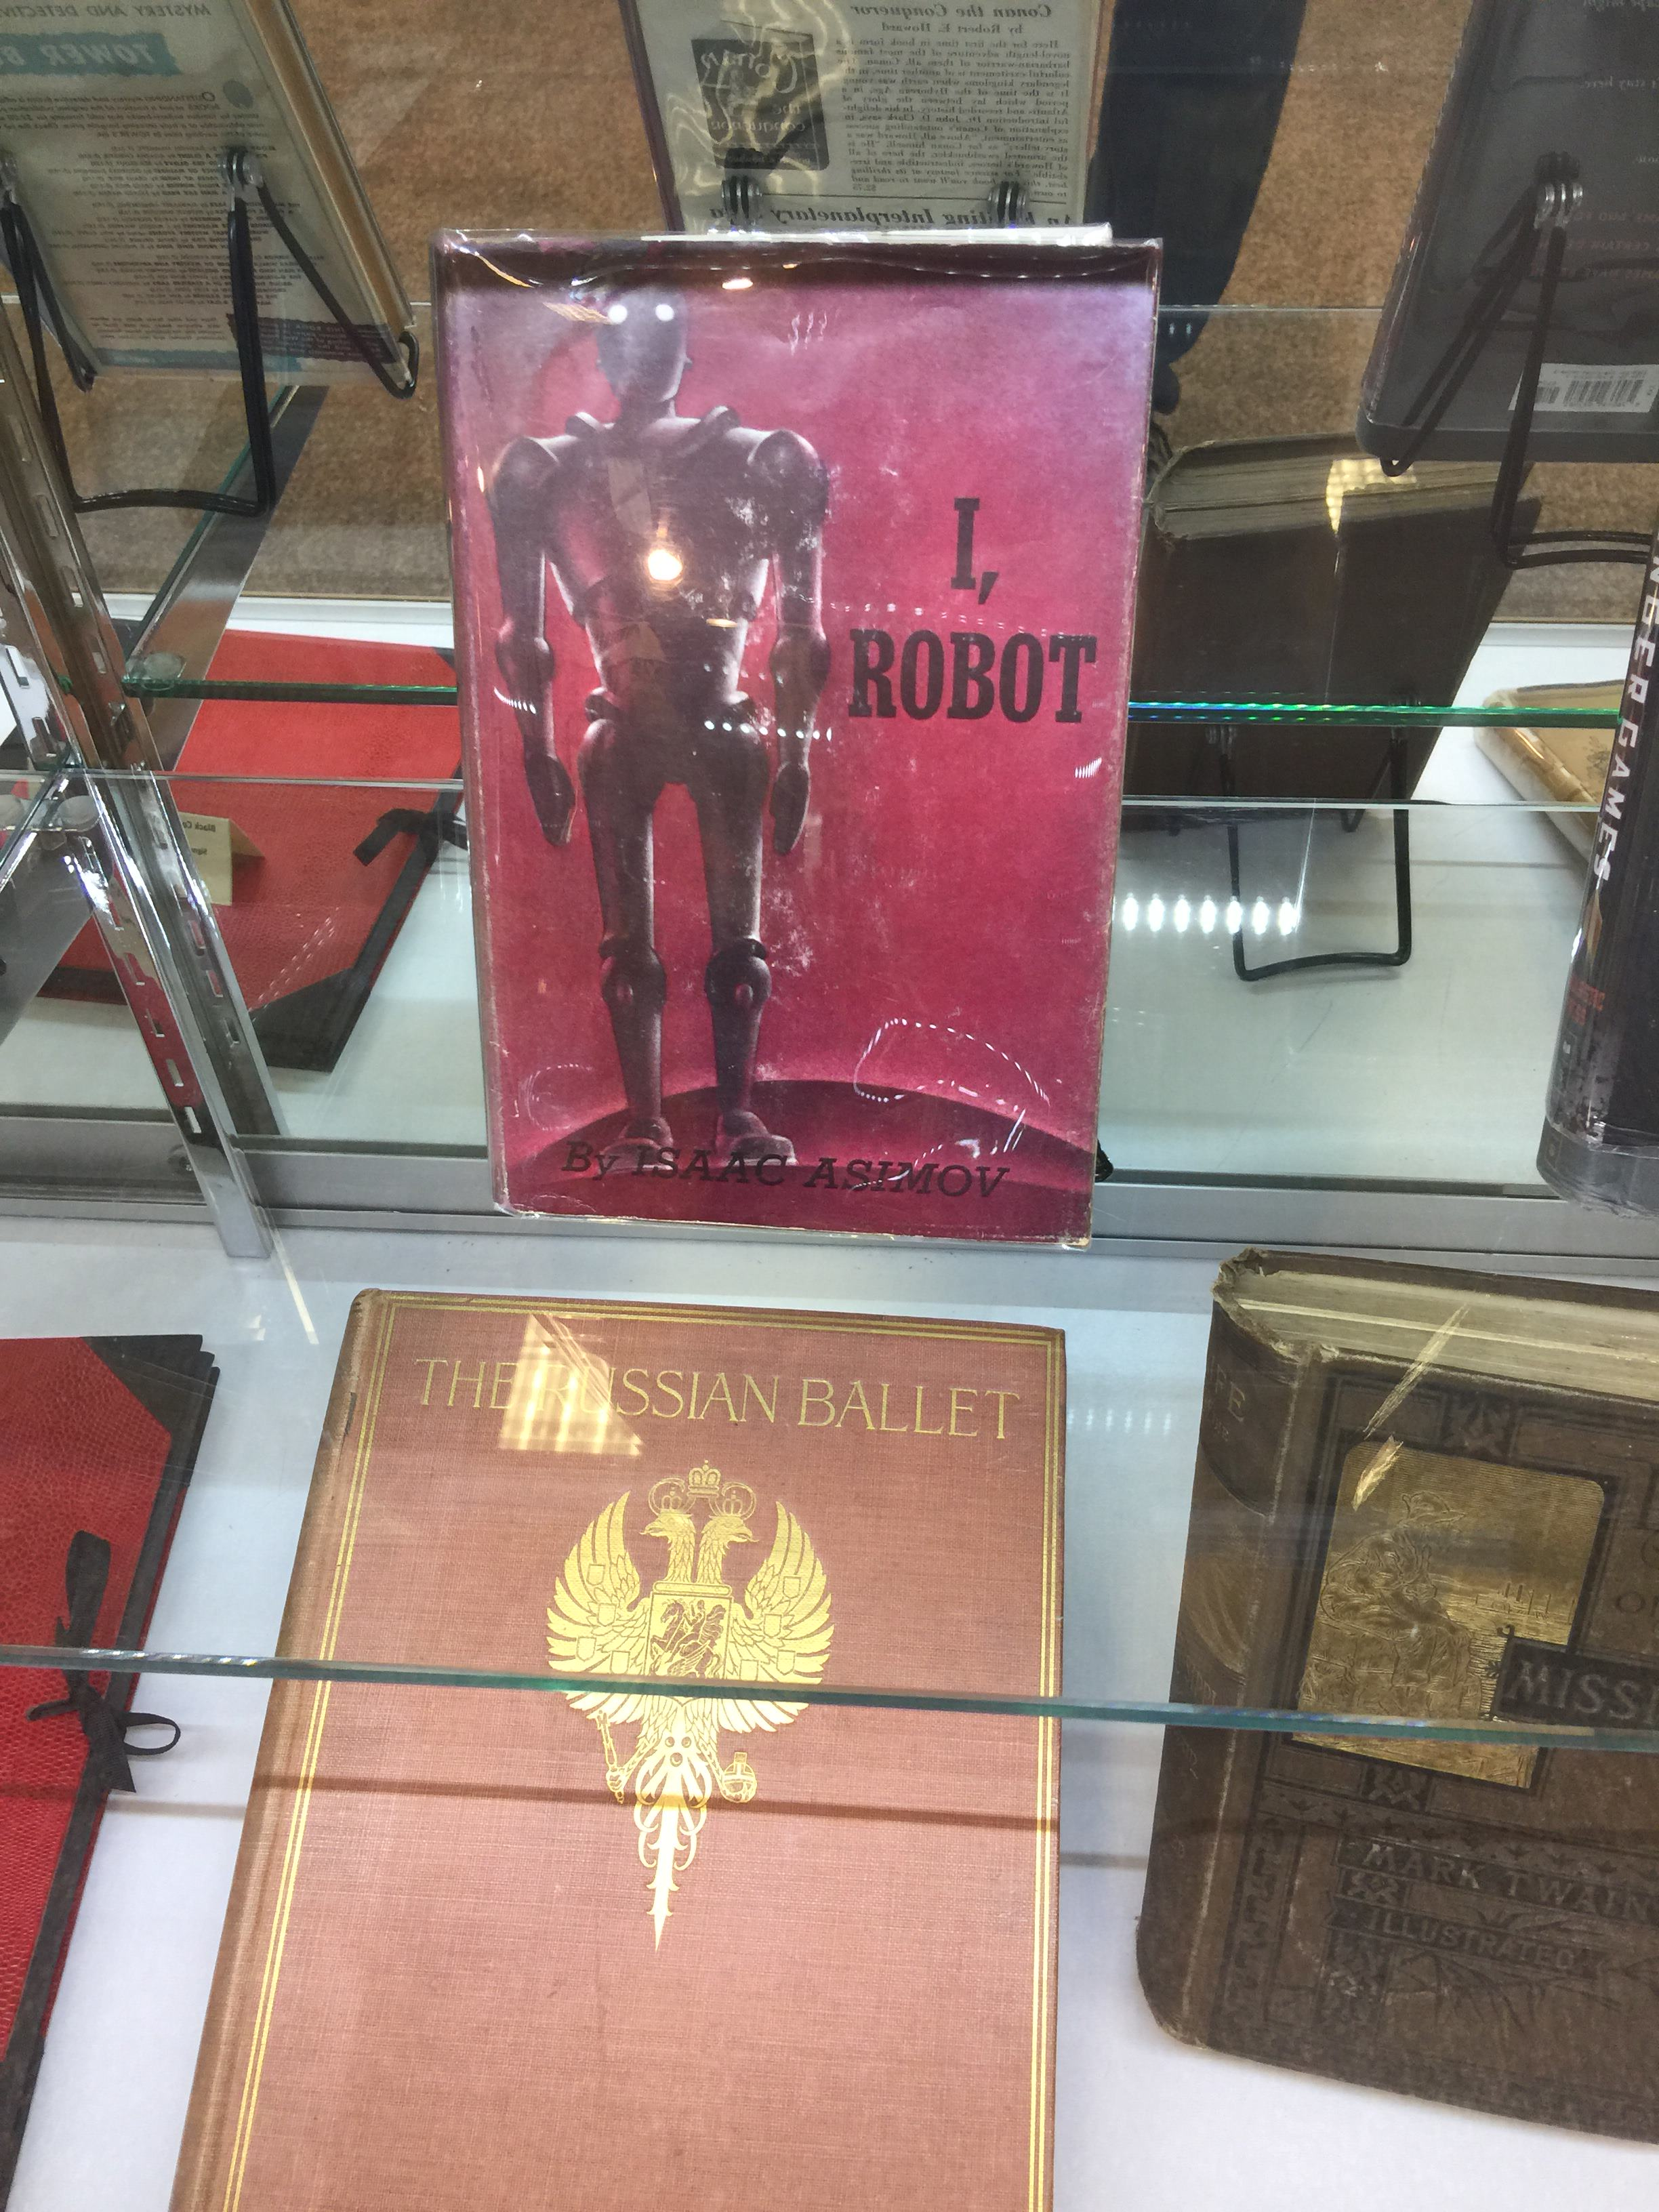 I, Robot by Isaac Asimov first edition from Gnome Press (Stories originally appeared in Super Science Stories and Astounding Science Fiction)